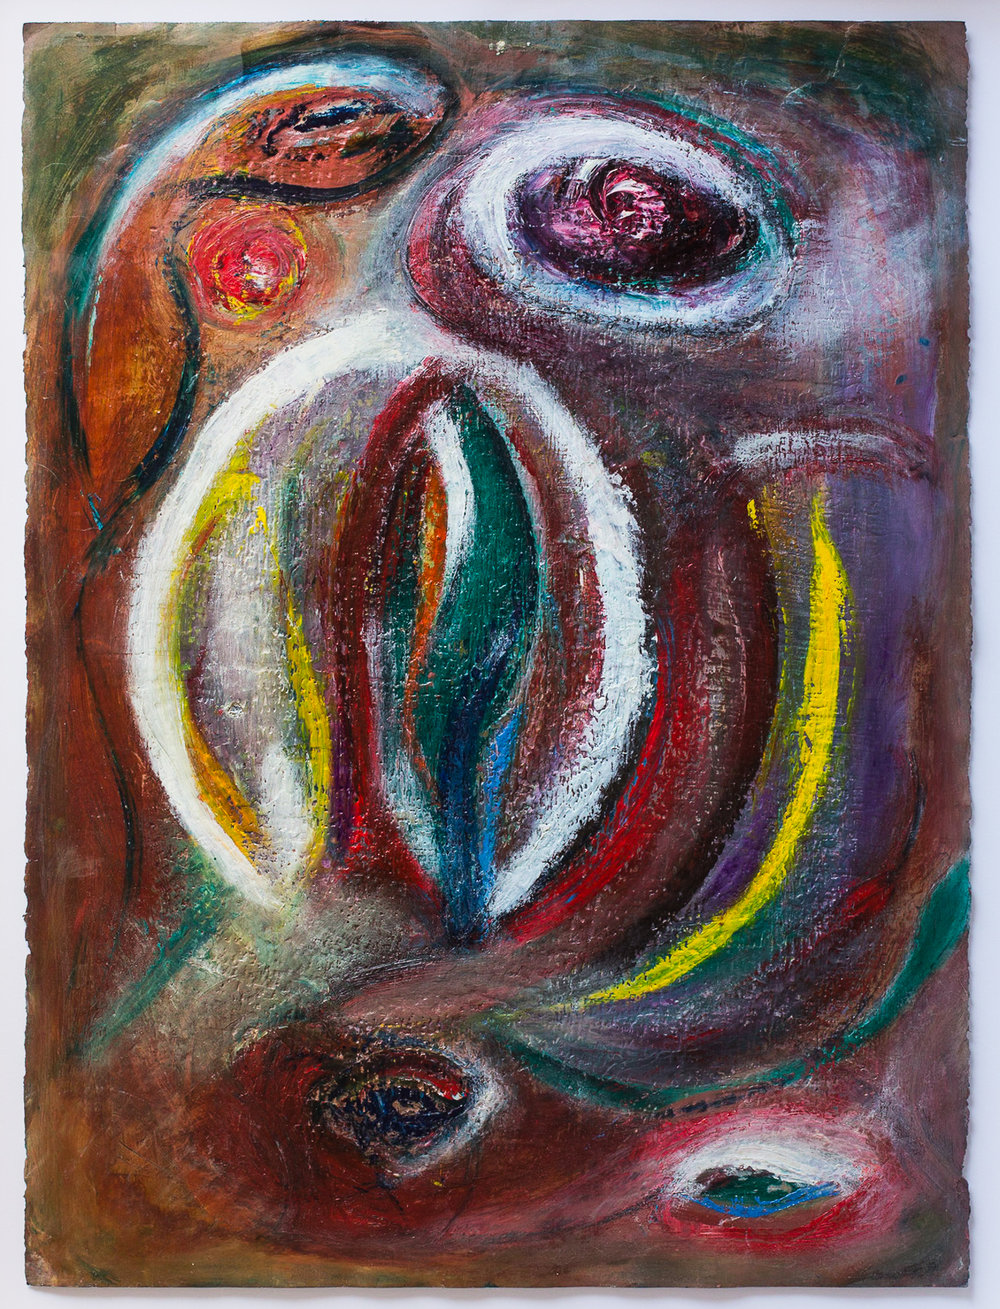 Snake eyes the apple, oil & beeswax arches paper, 71 x 90cm.